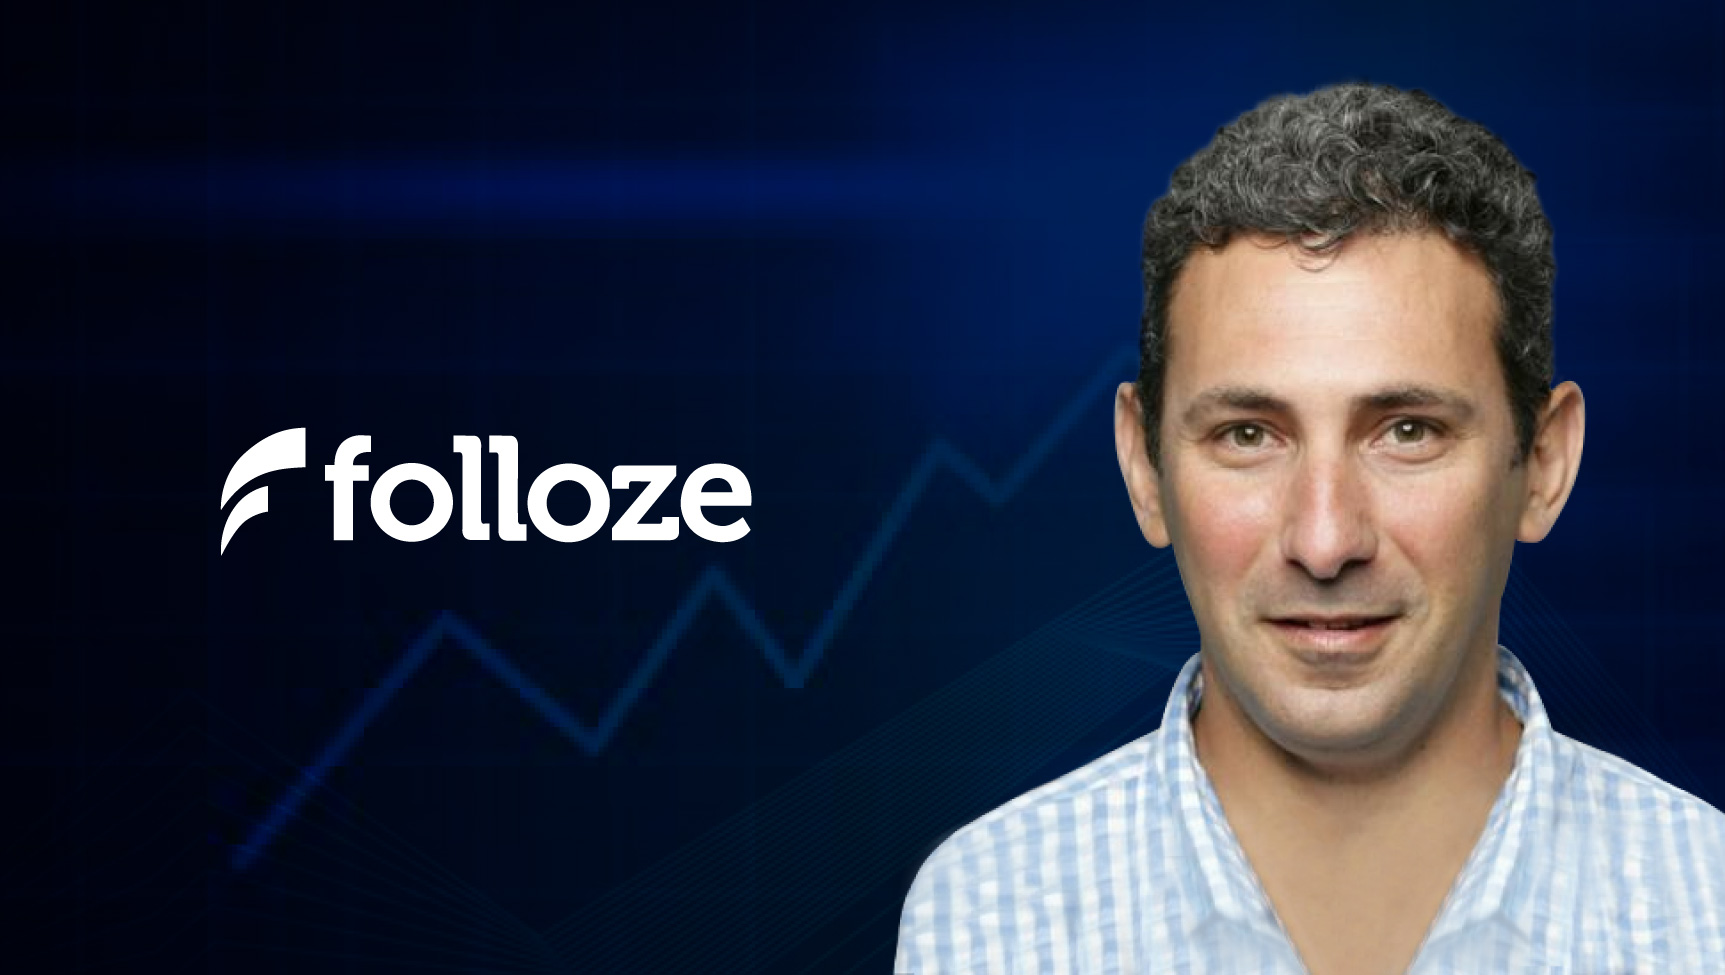 SalesTech Star Interview with David Brutman, Co-Founder and Chief Product Officer at Folloze